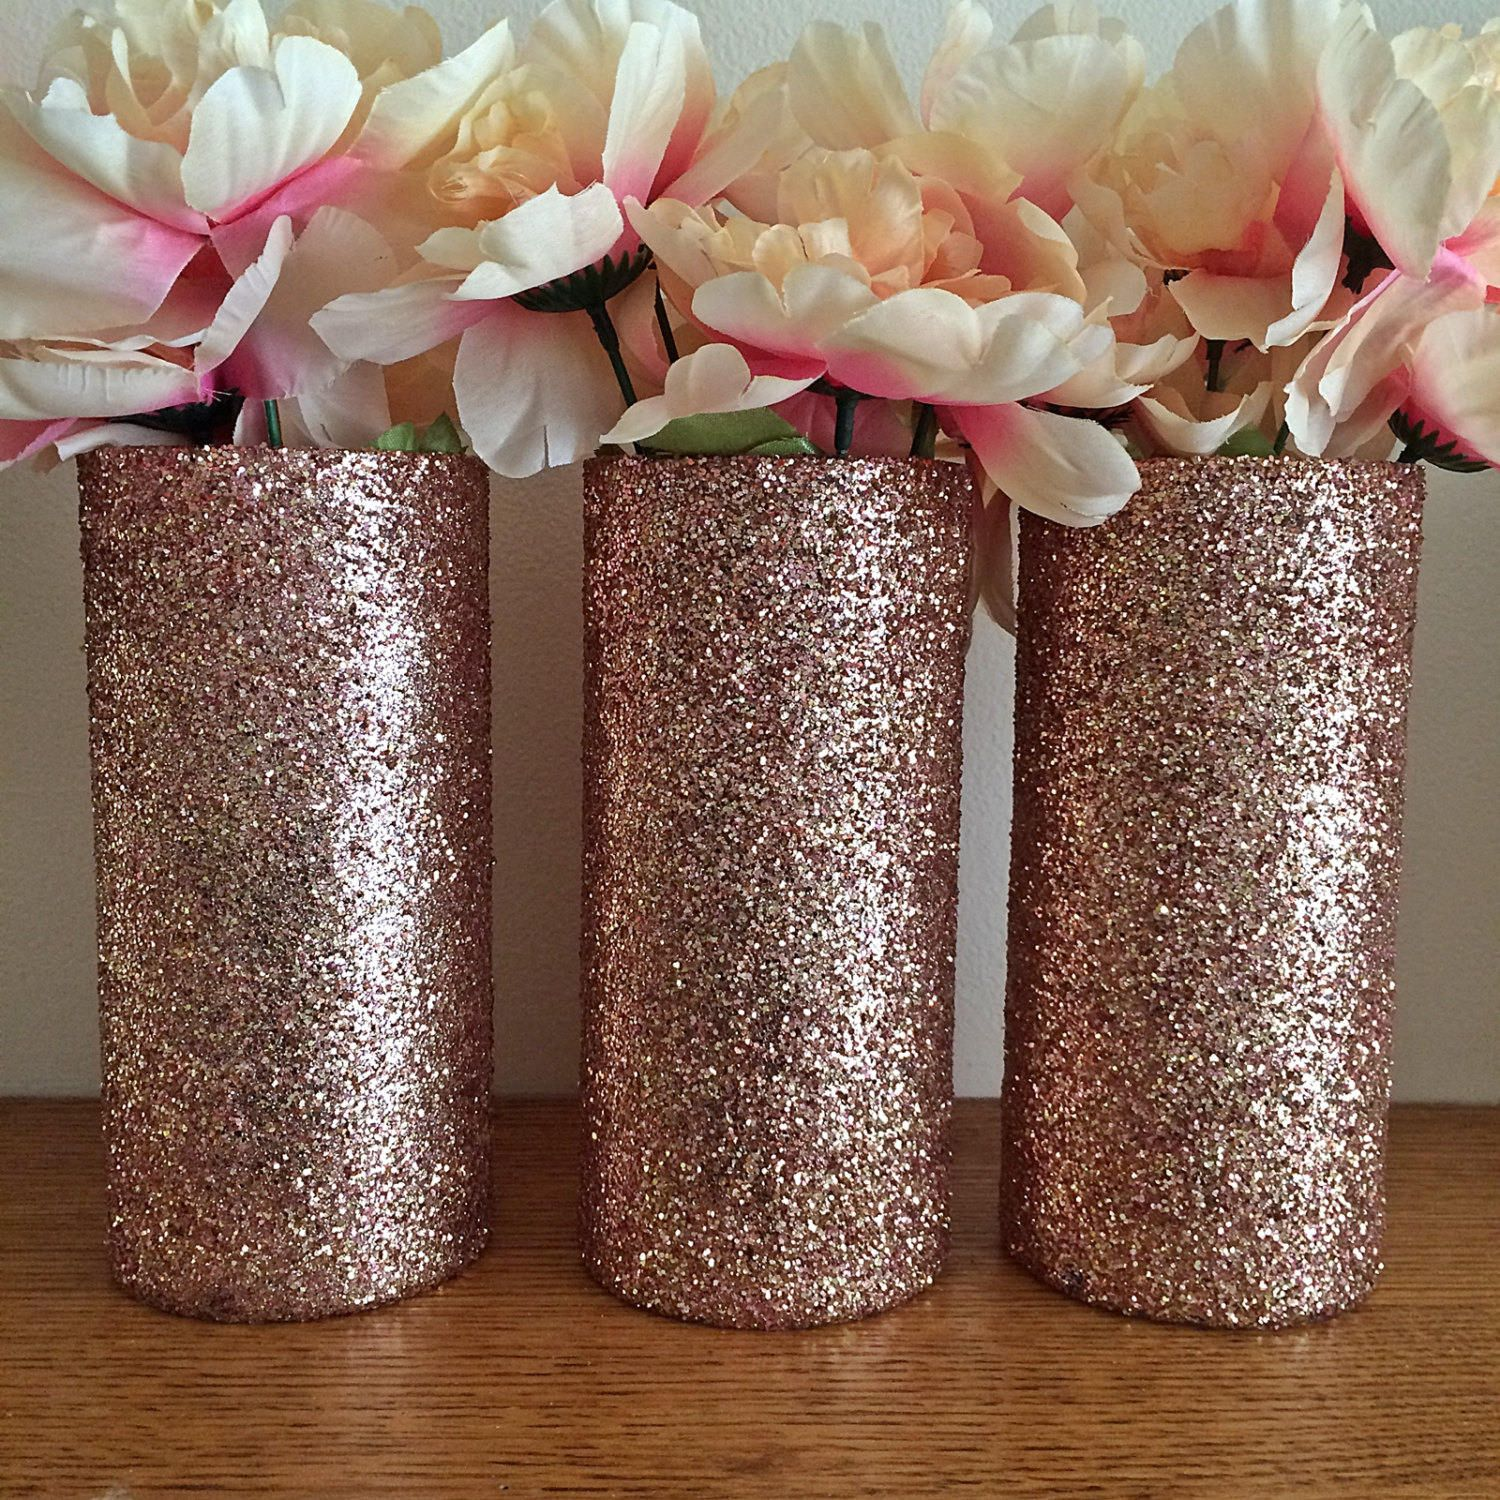 Set of 15 Glass Vases Rose Gold Vases Wedding Centerpieces Rose